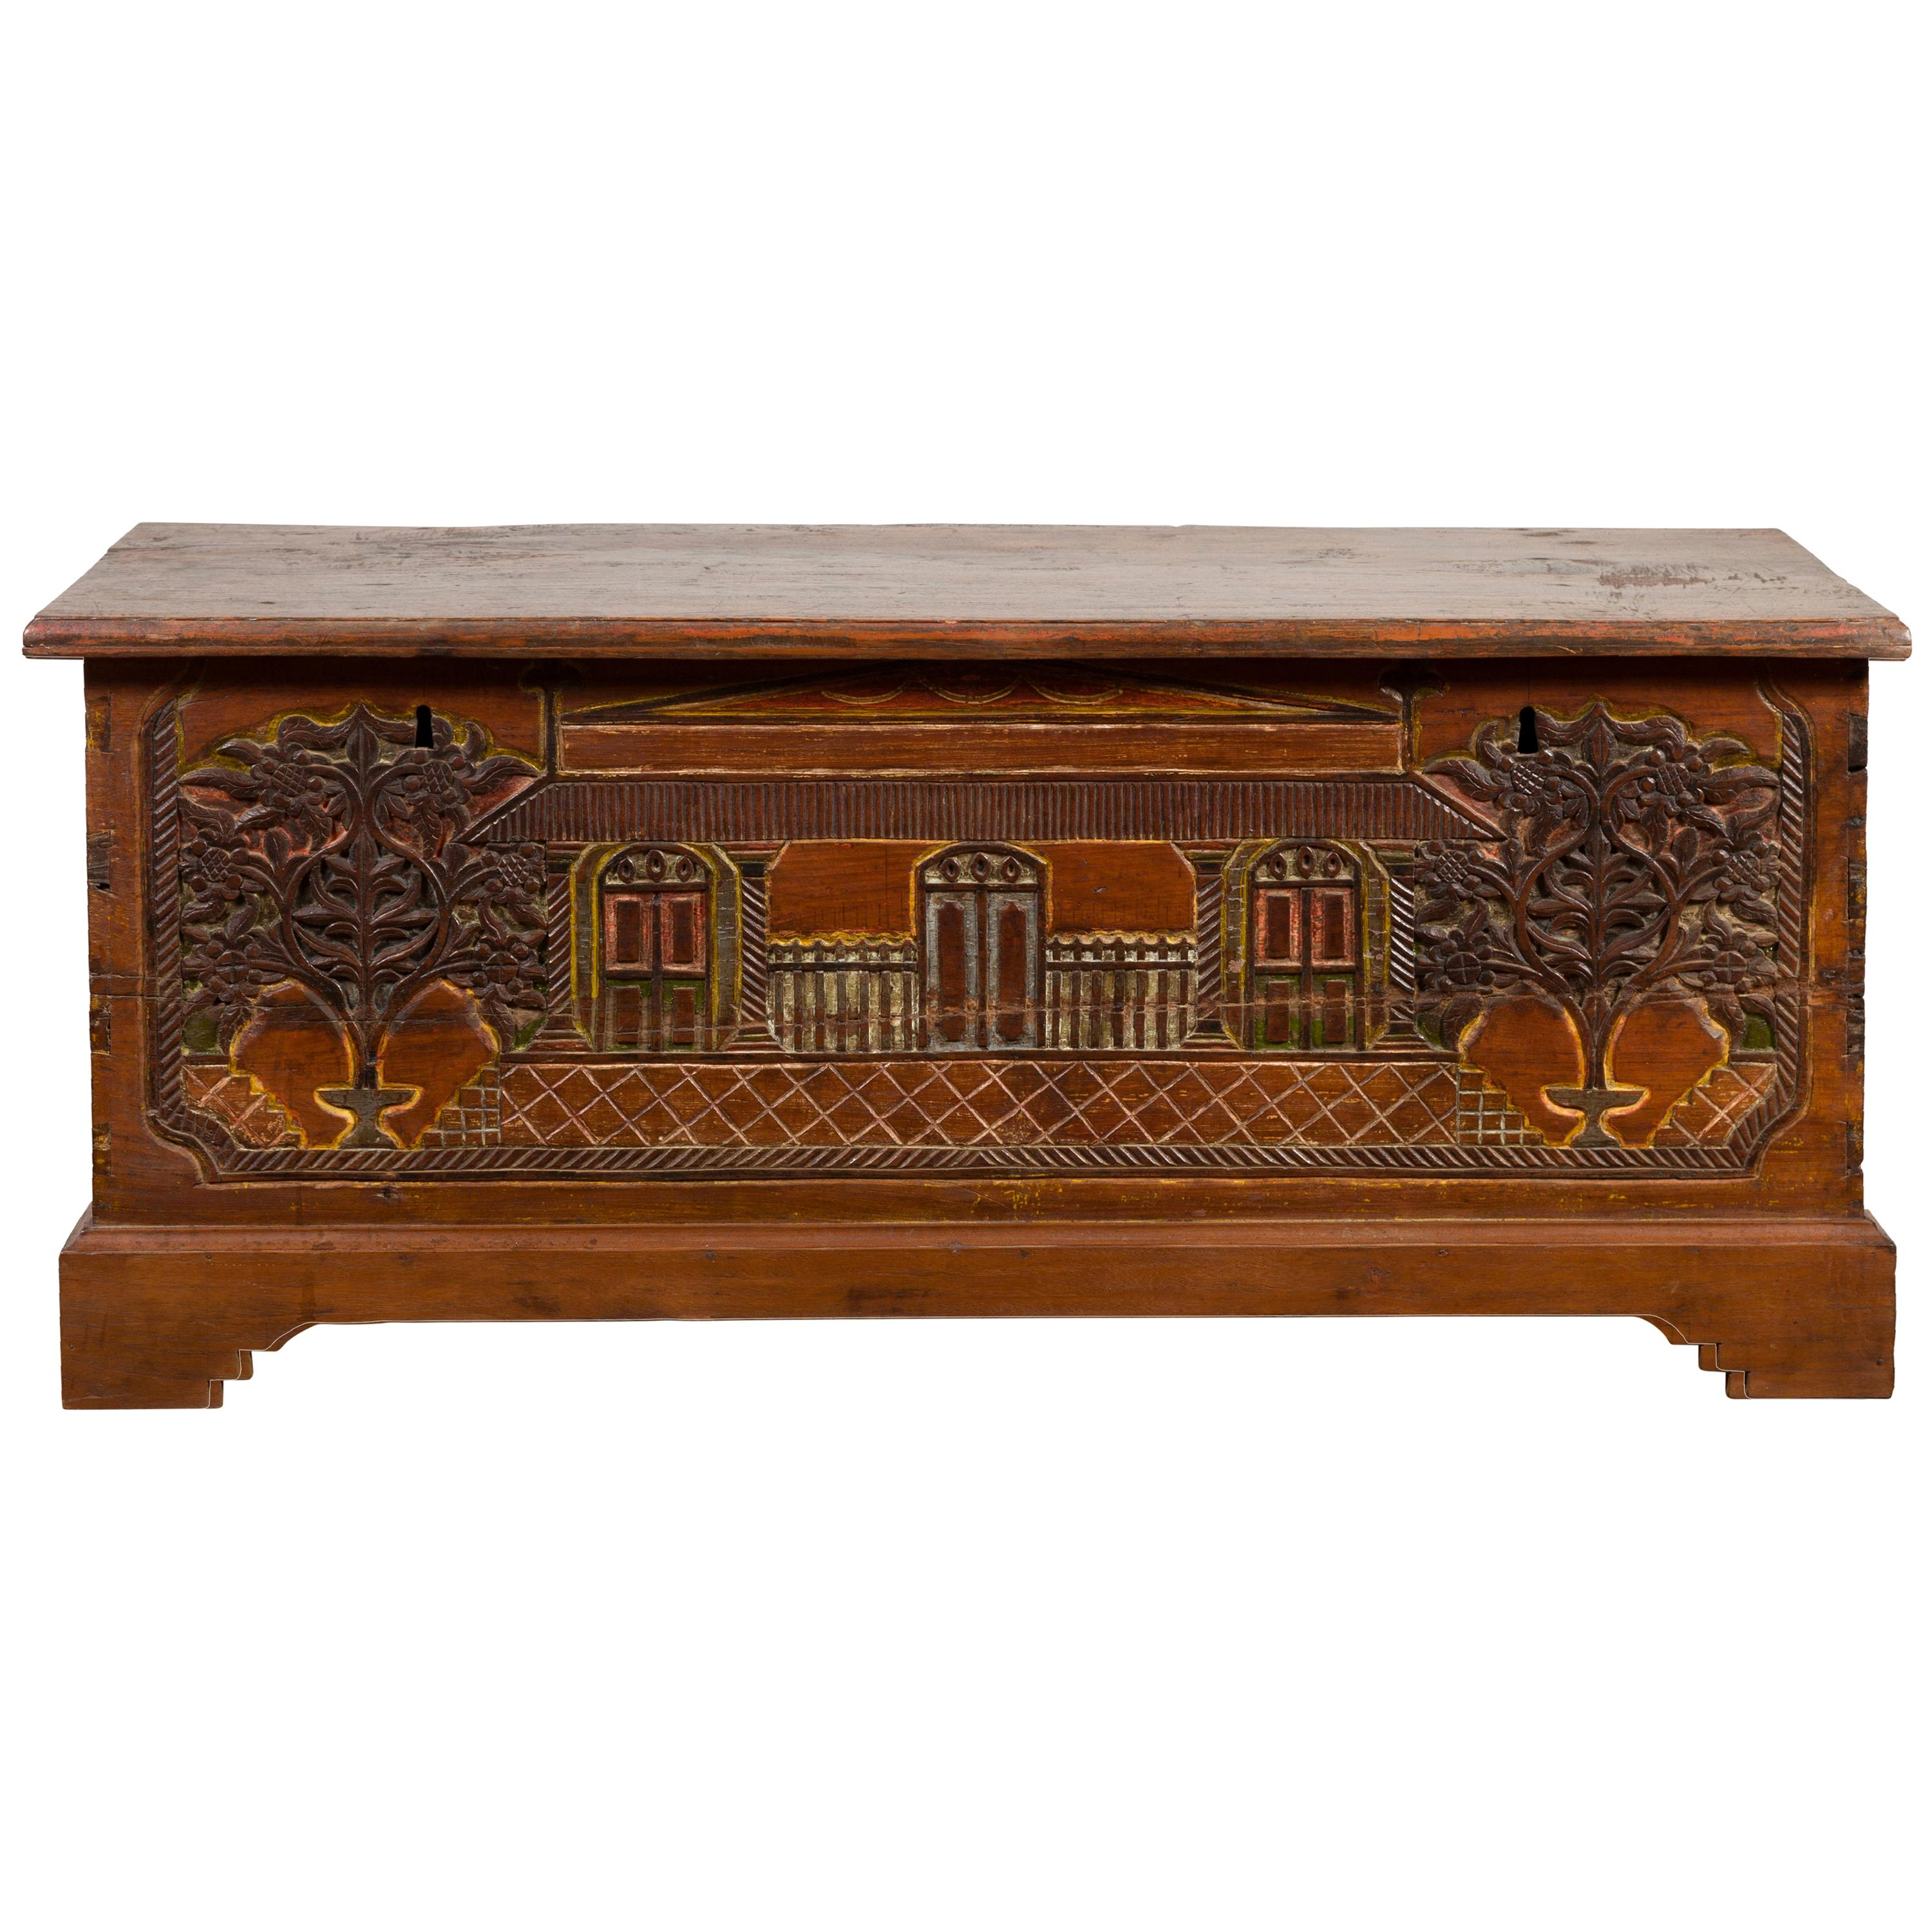 Indonesian 19th Century Carved and Painted Trunk with Architecture and Foliage